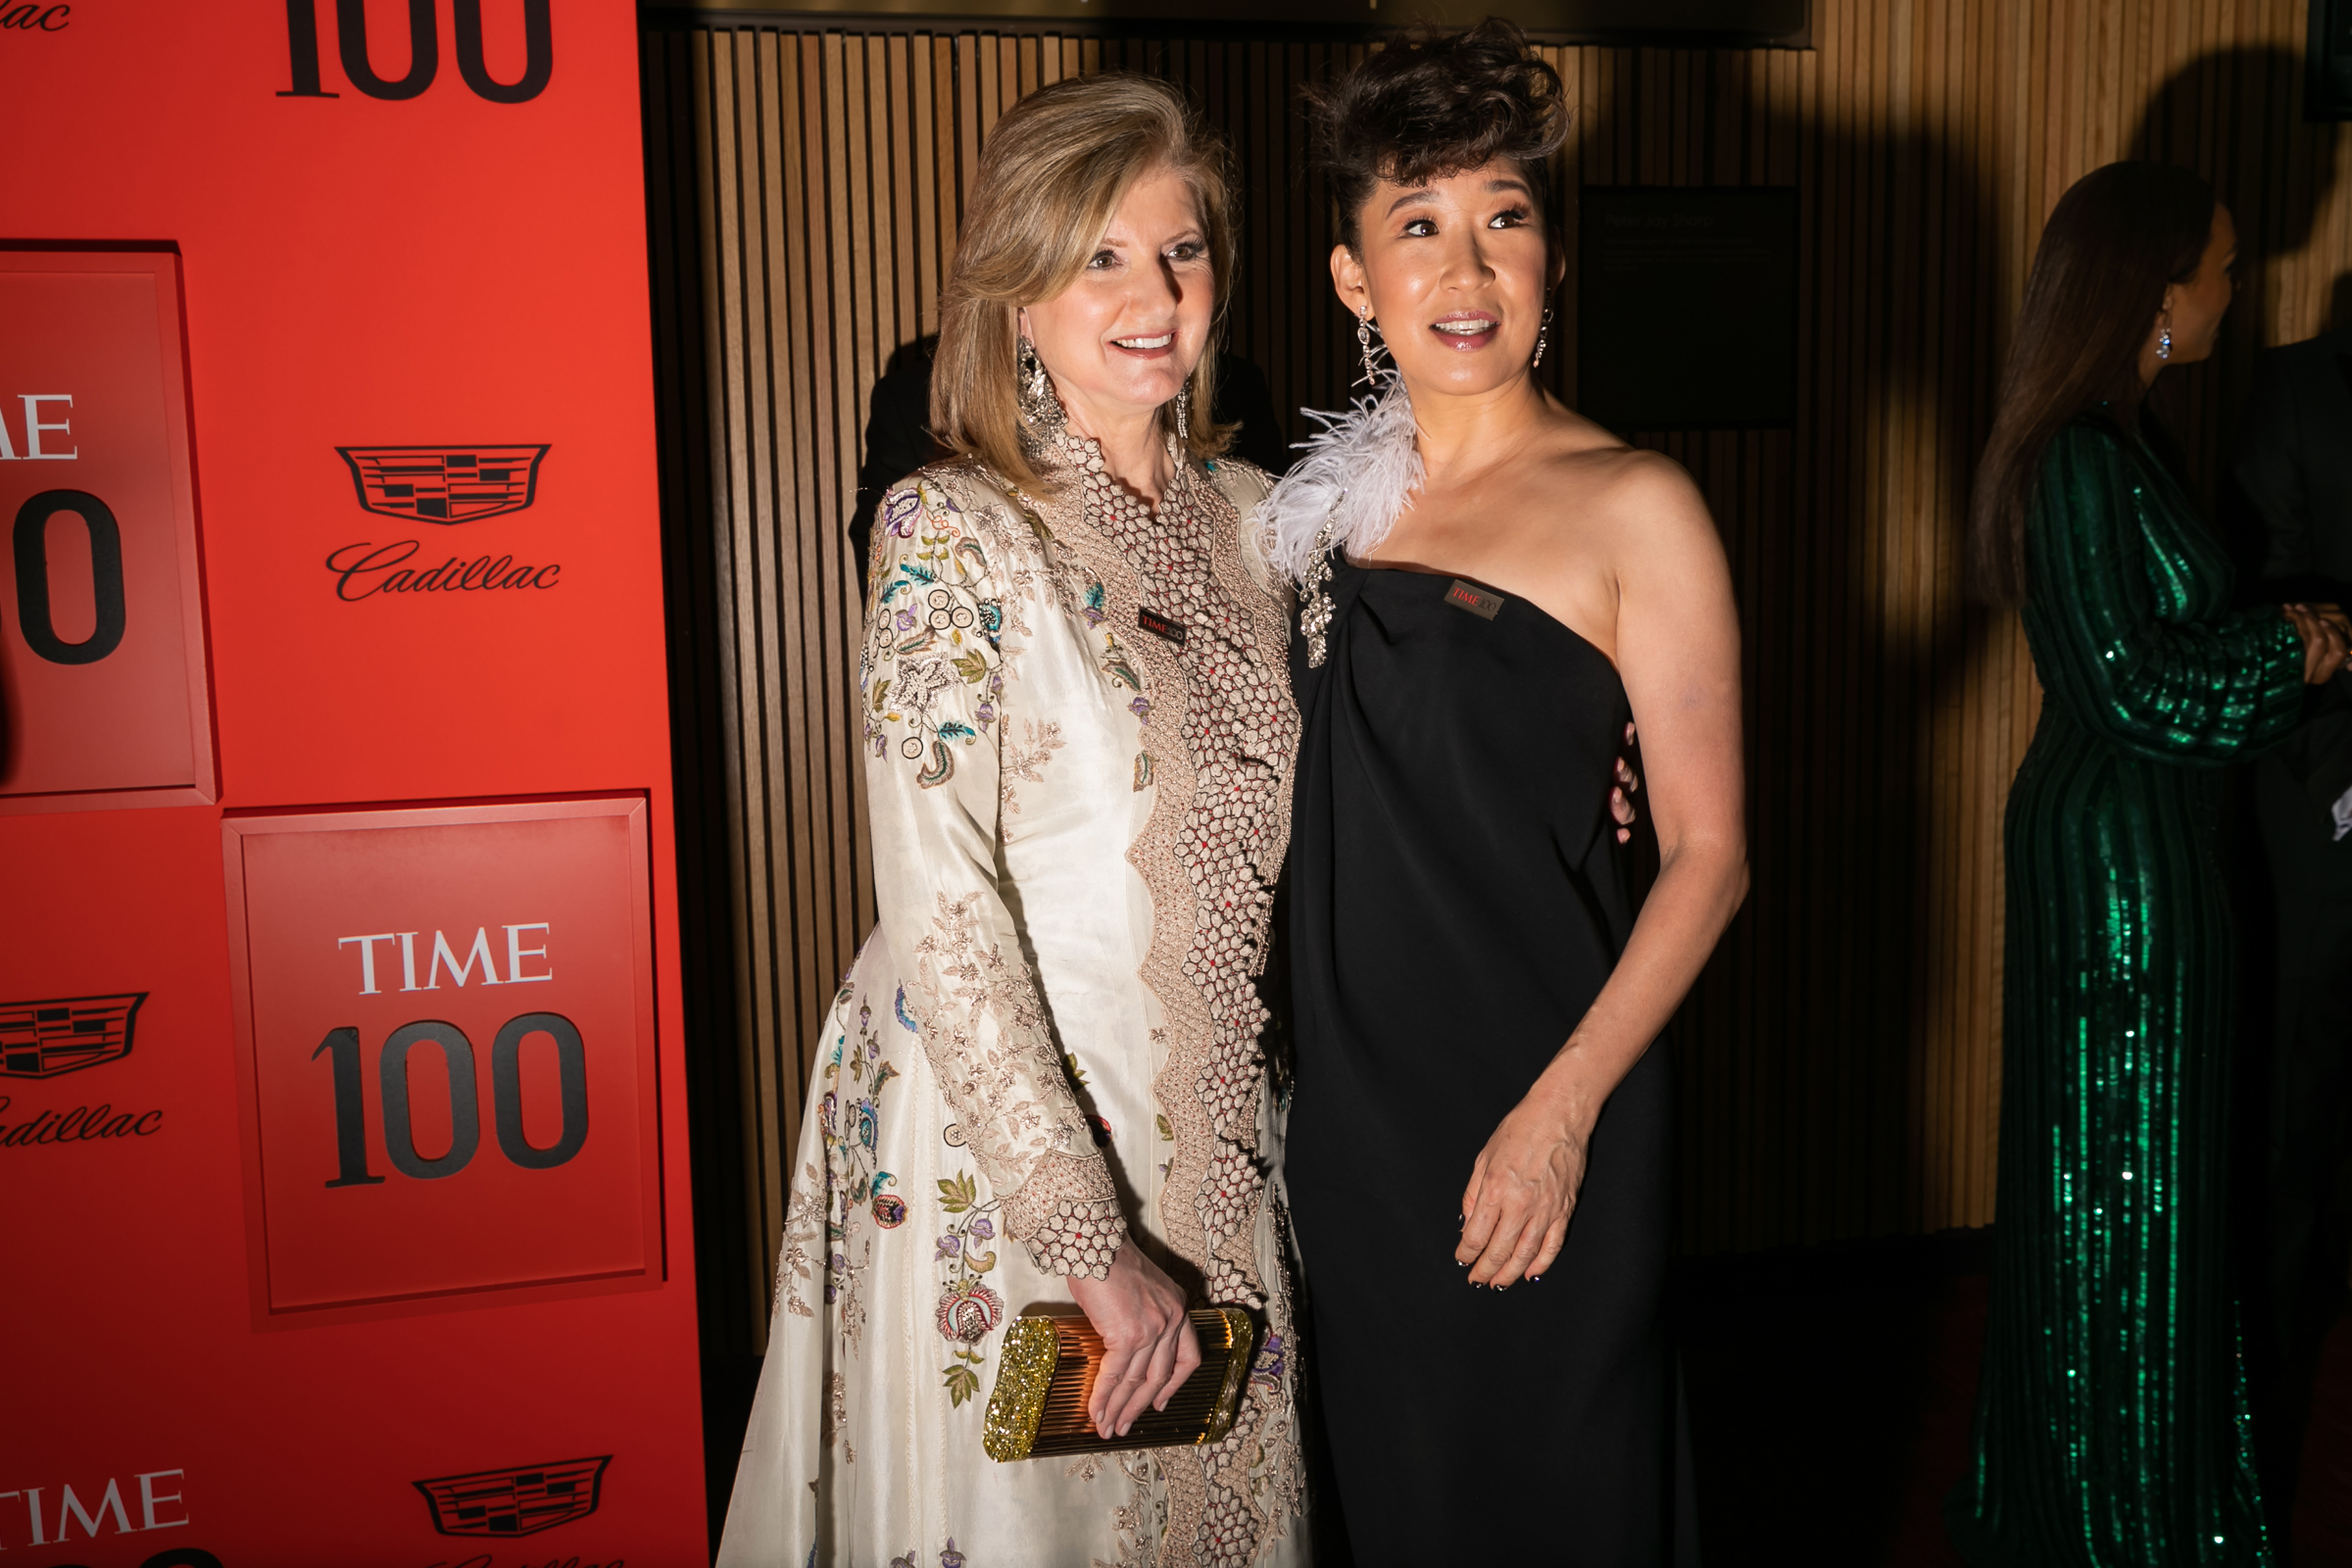 Arianna Huffington and Sandra Oh at the Time 100 Gala at Jazz at Lincoln Center in New York City on April 23, 2019.